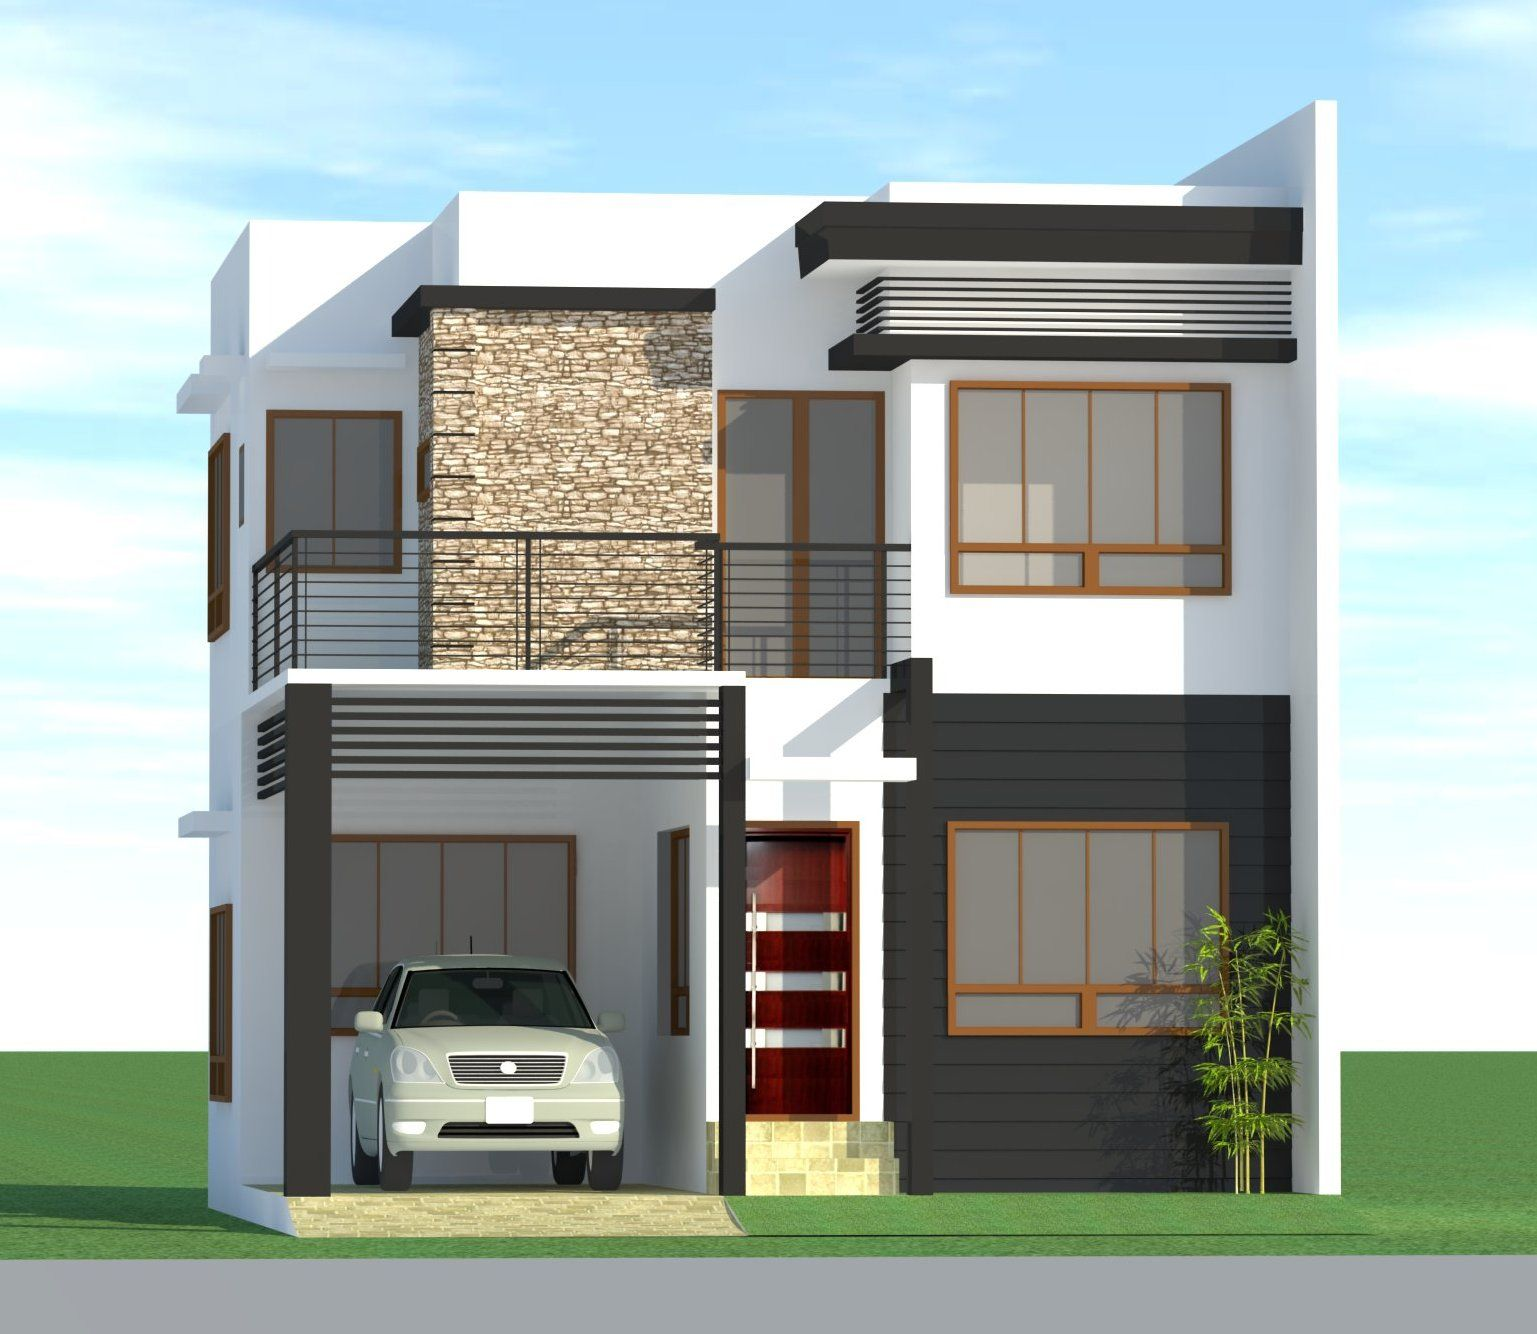 House Desing modern house | modern house design in chennai - 2600 sq. ft